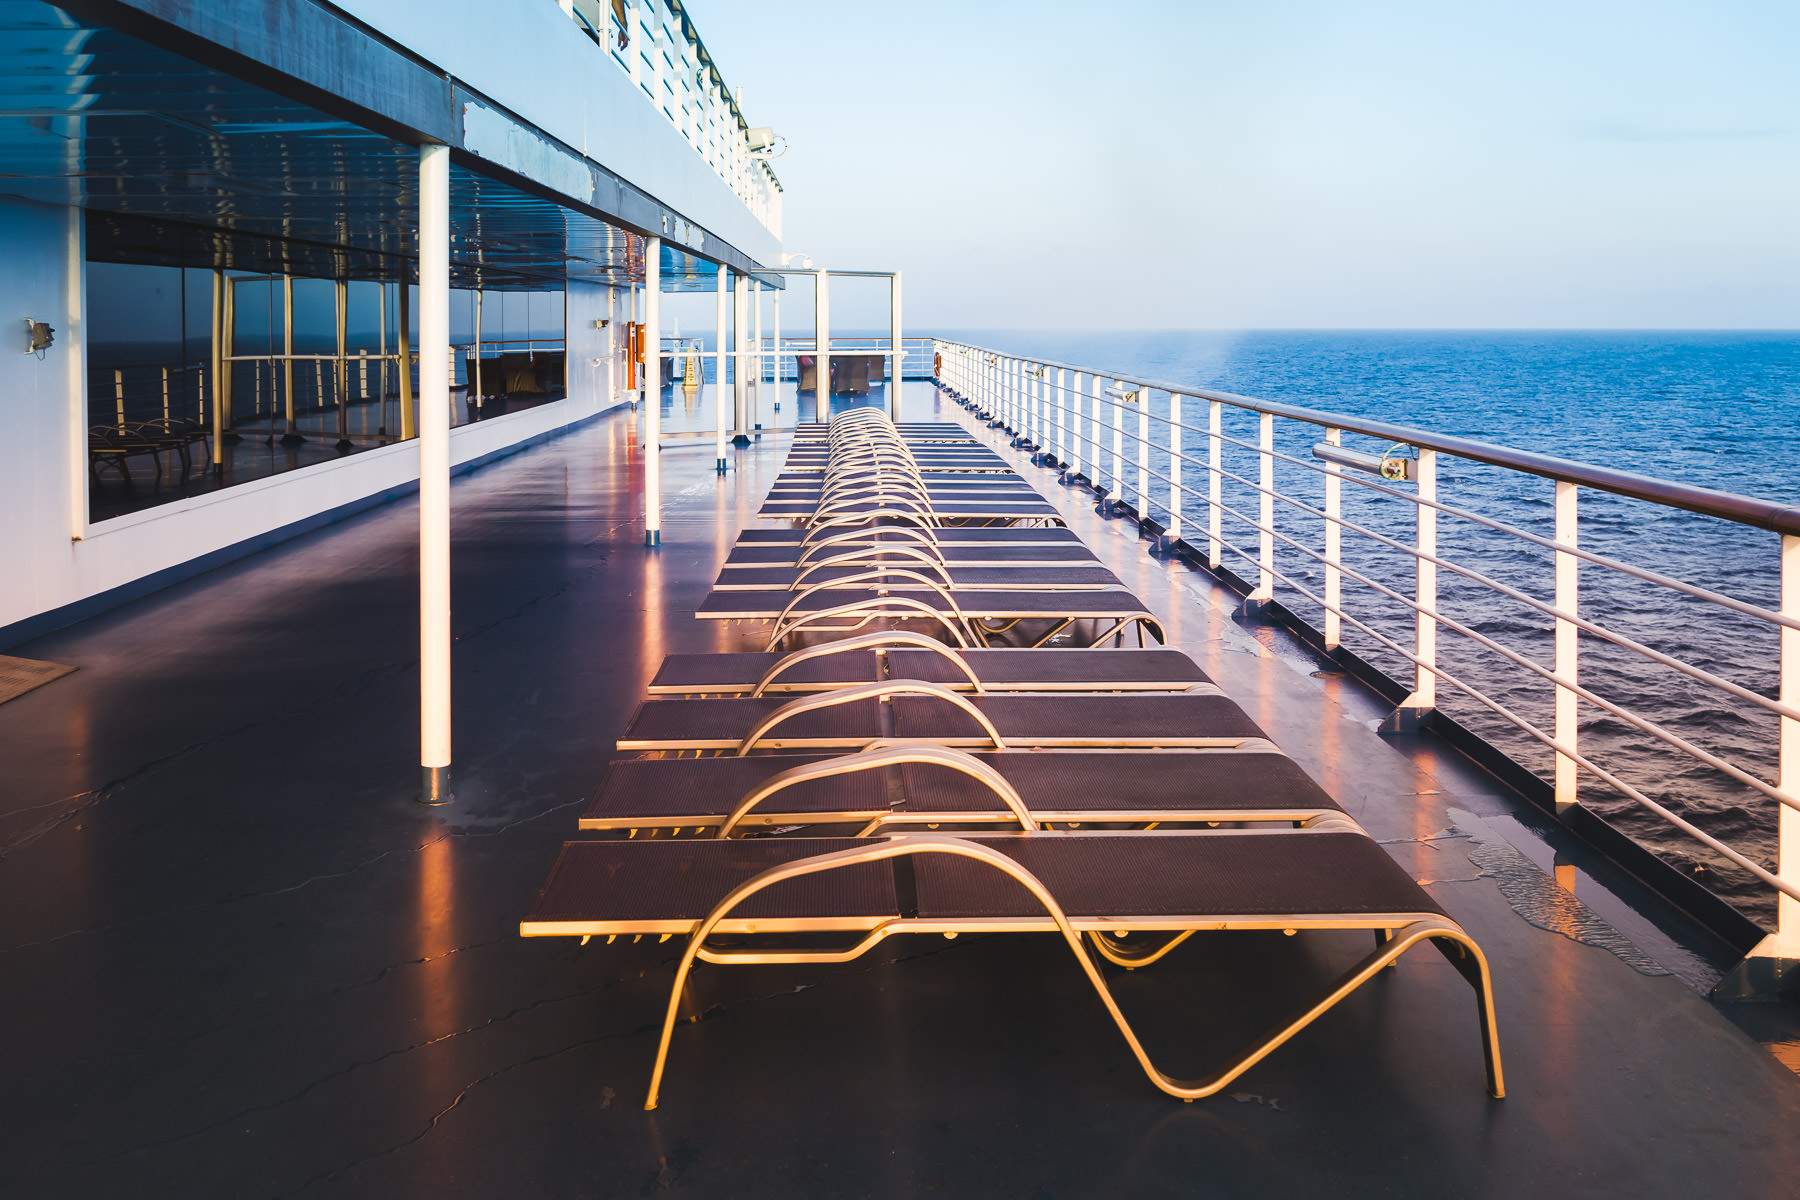 Lounge chairs on the cruise ship Carnival Magic await guests somewhere off the coast of south Florida.